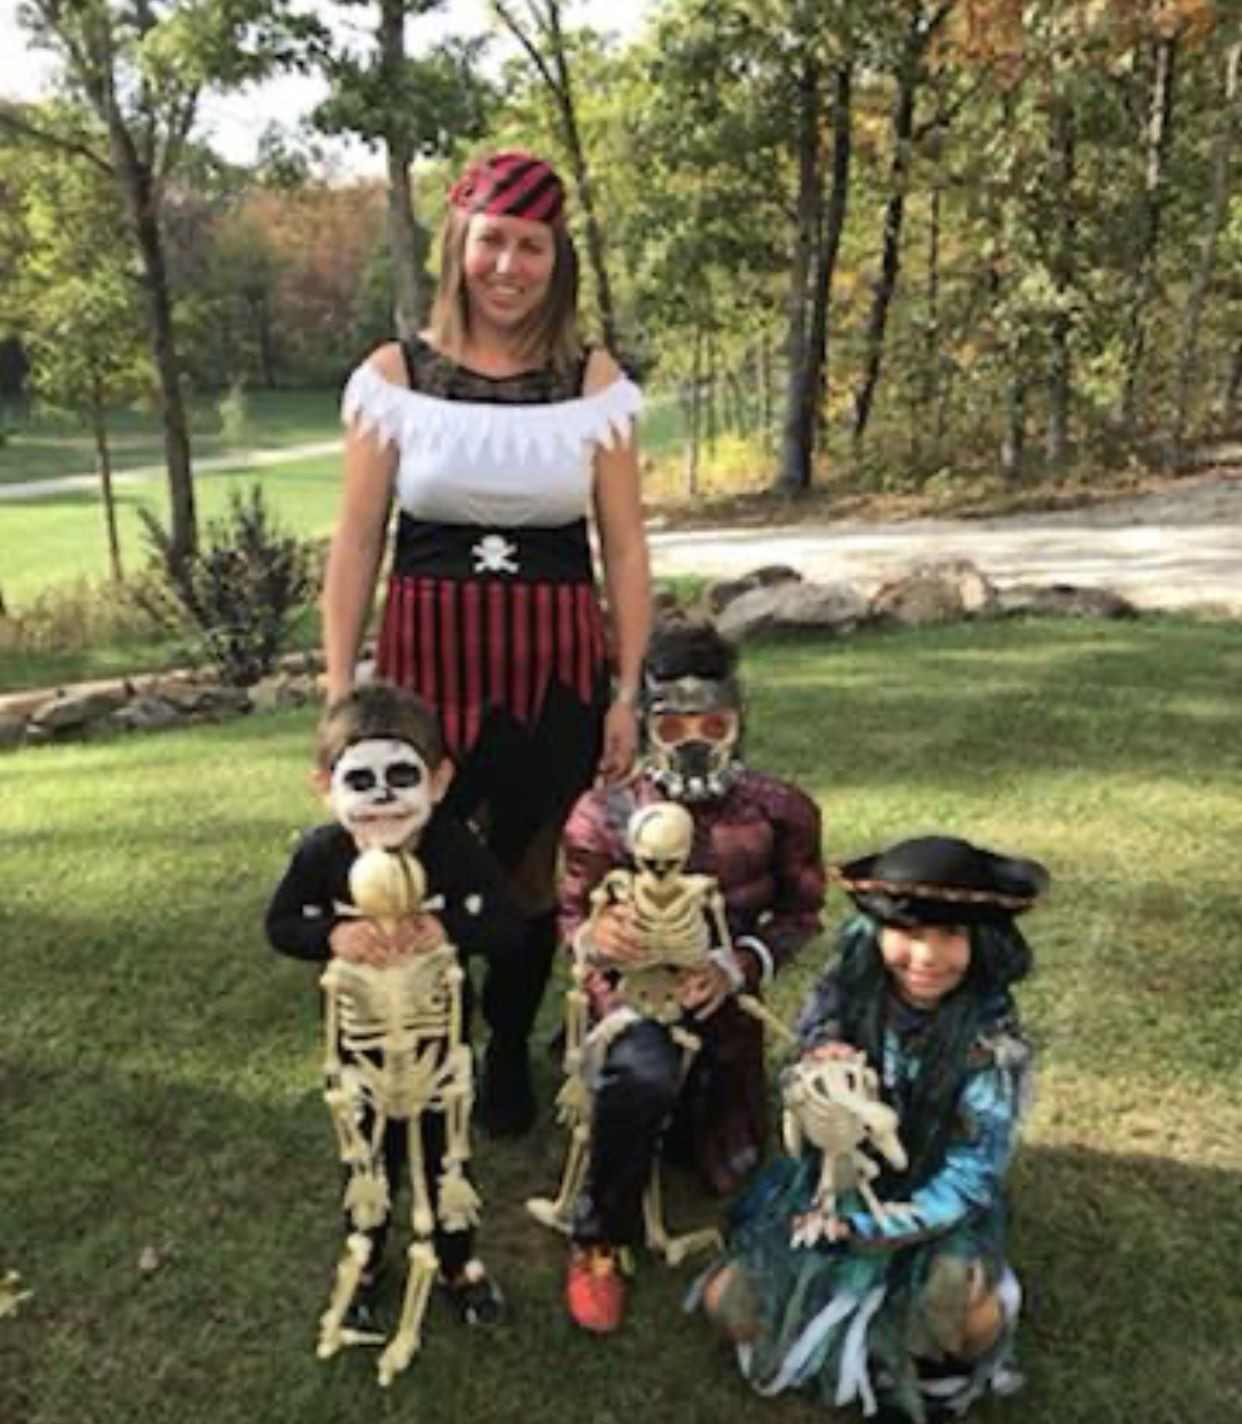 New blog post is up! This week is all about Halloween and